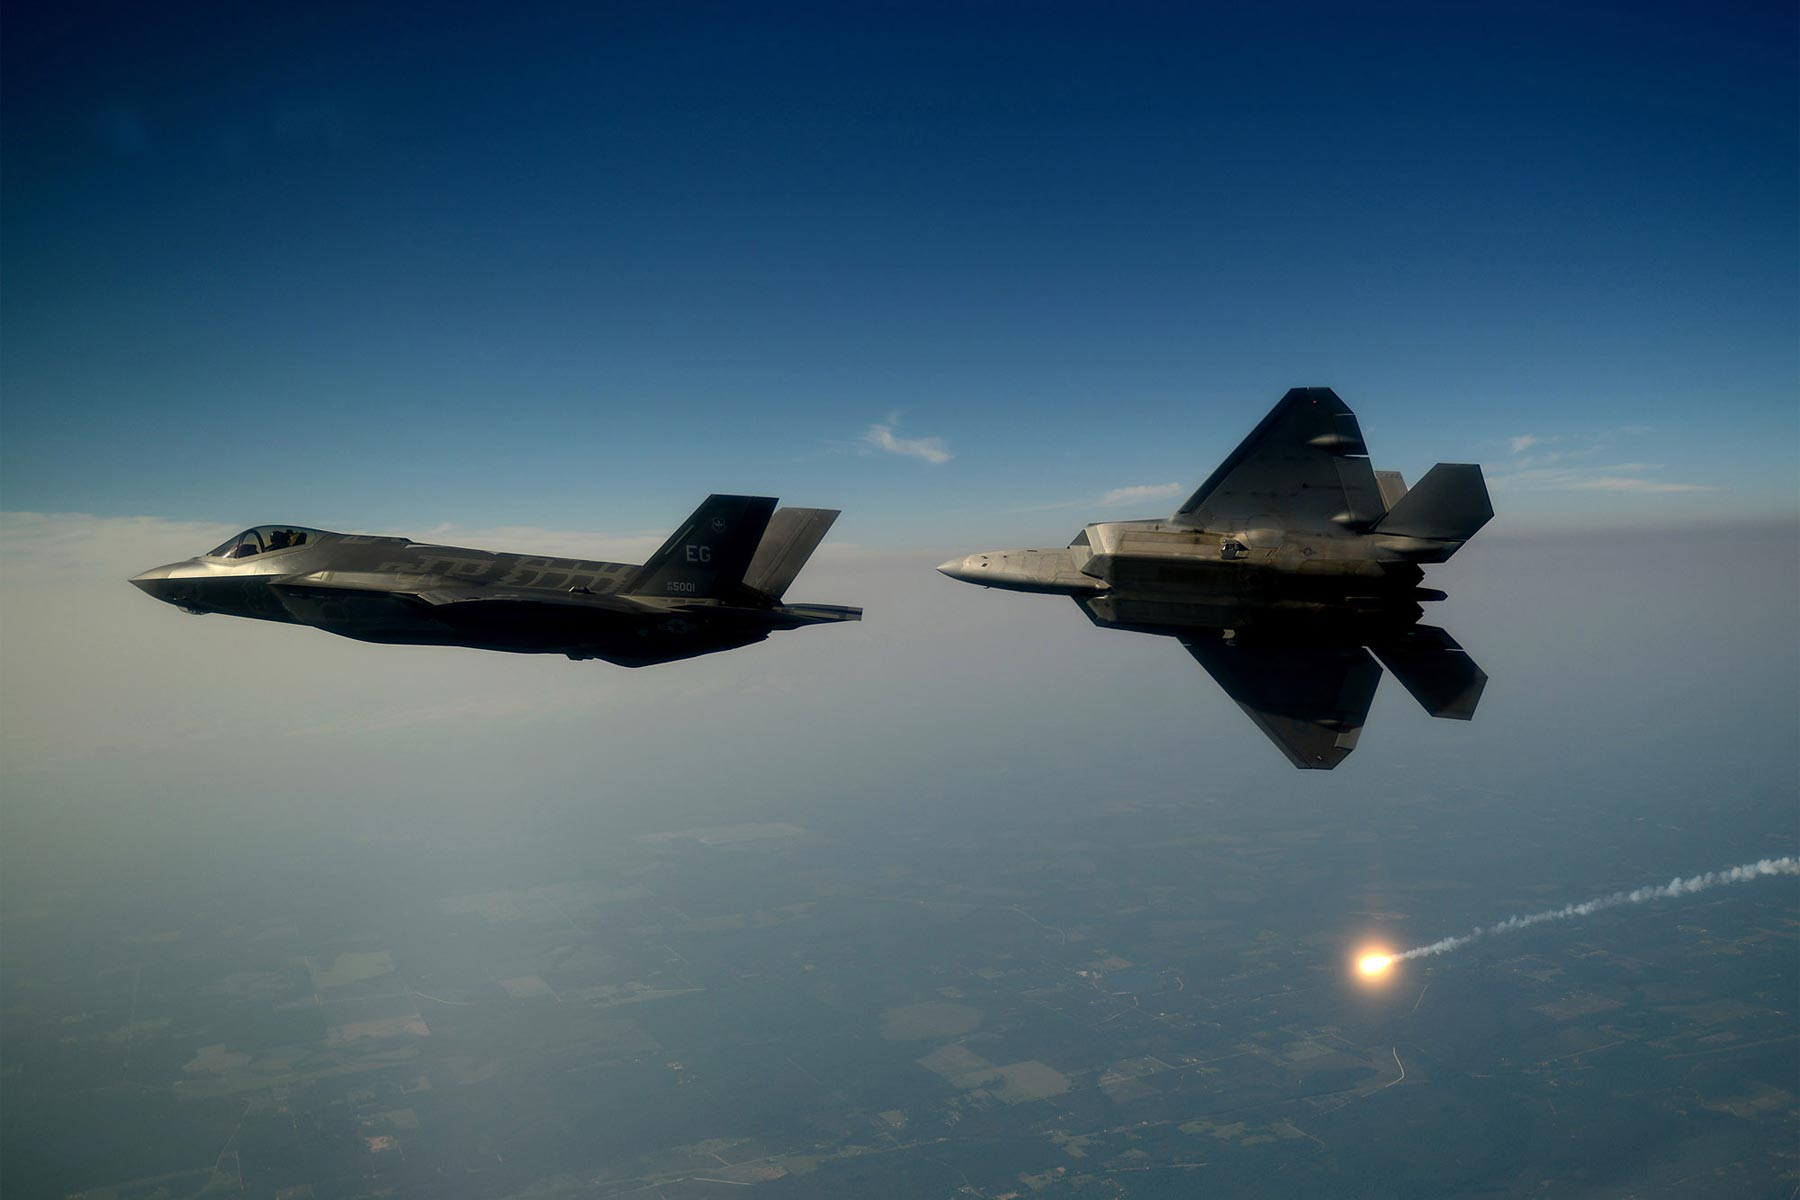 After Successful Data Transfer Between F-35 and F-22, Air Force Plans New Tests | Military.com